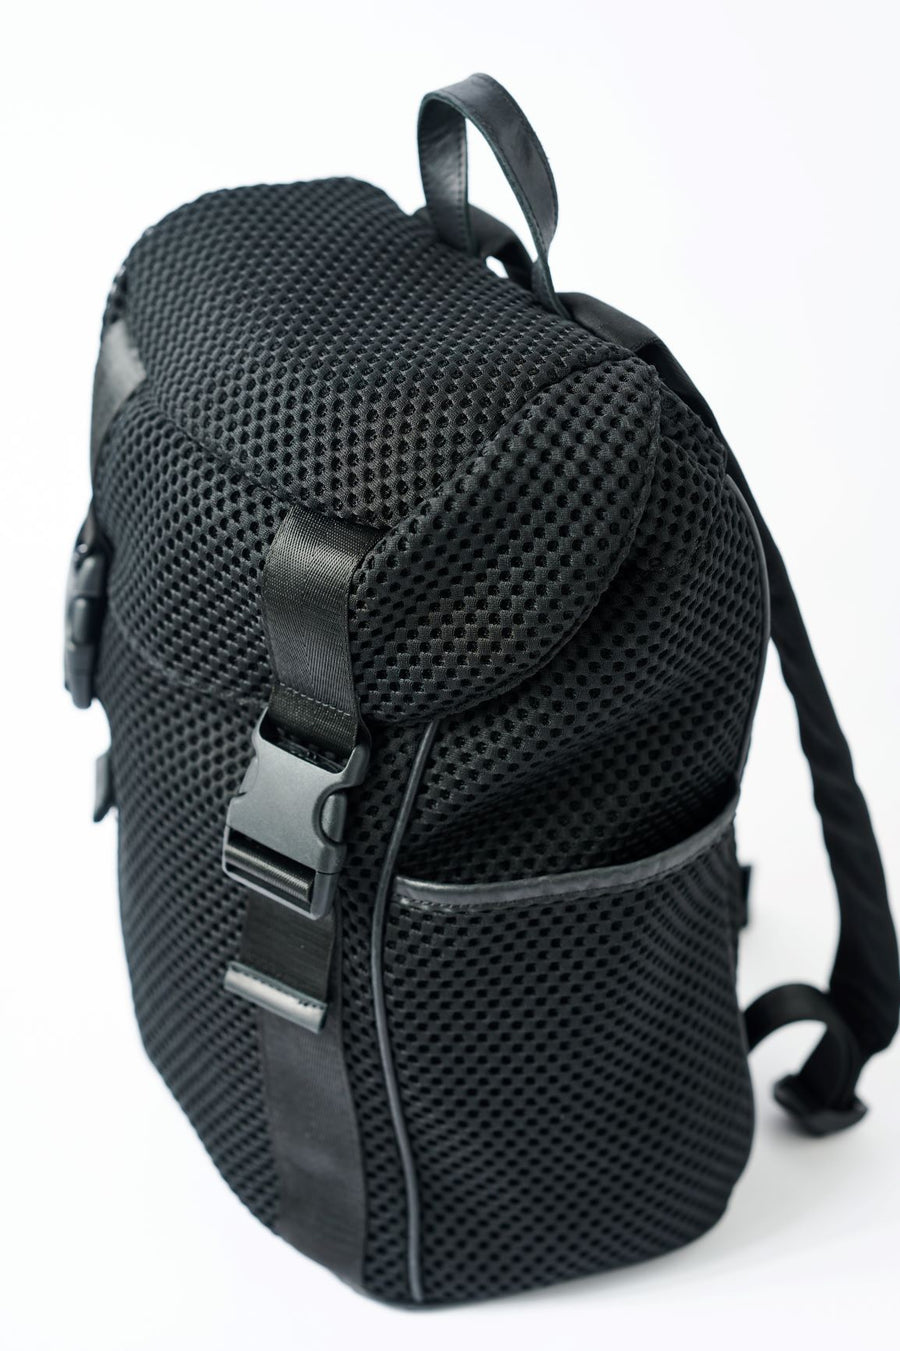 The Newberry Backpack